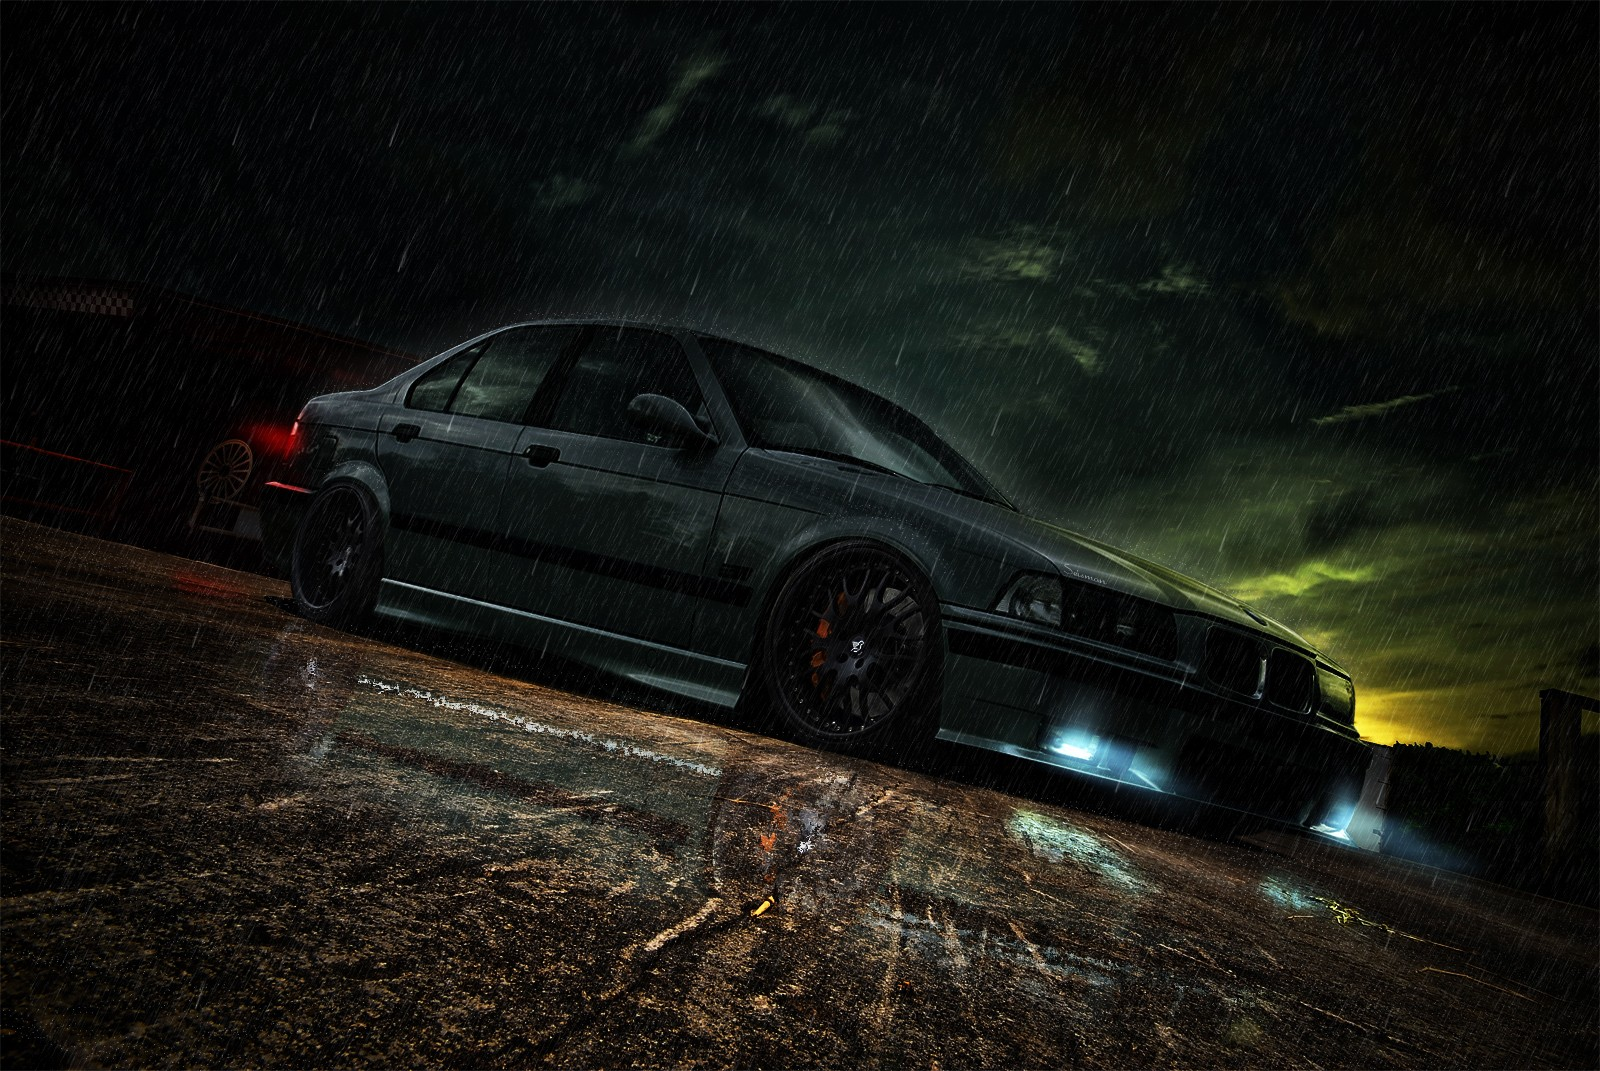 Bmw E36 Wallpaper 11 1600x1071